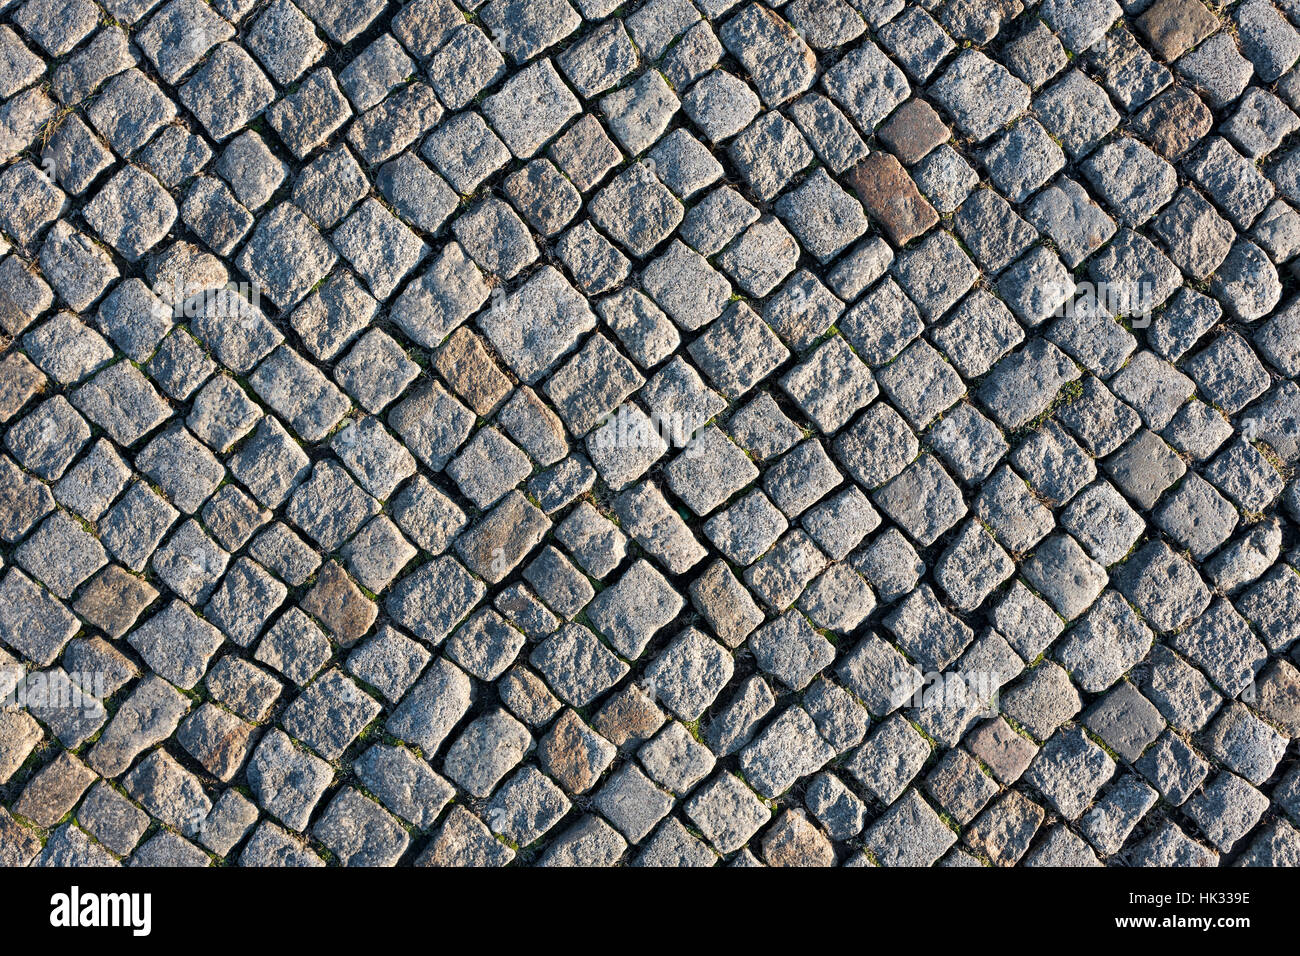 cobblestone pavement for background use - Stock Image